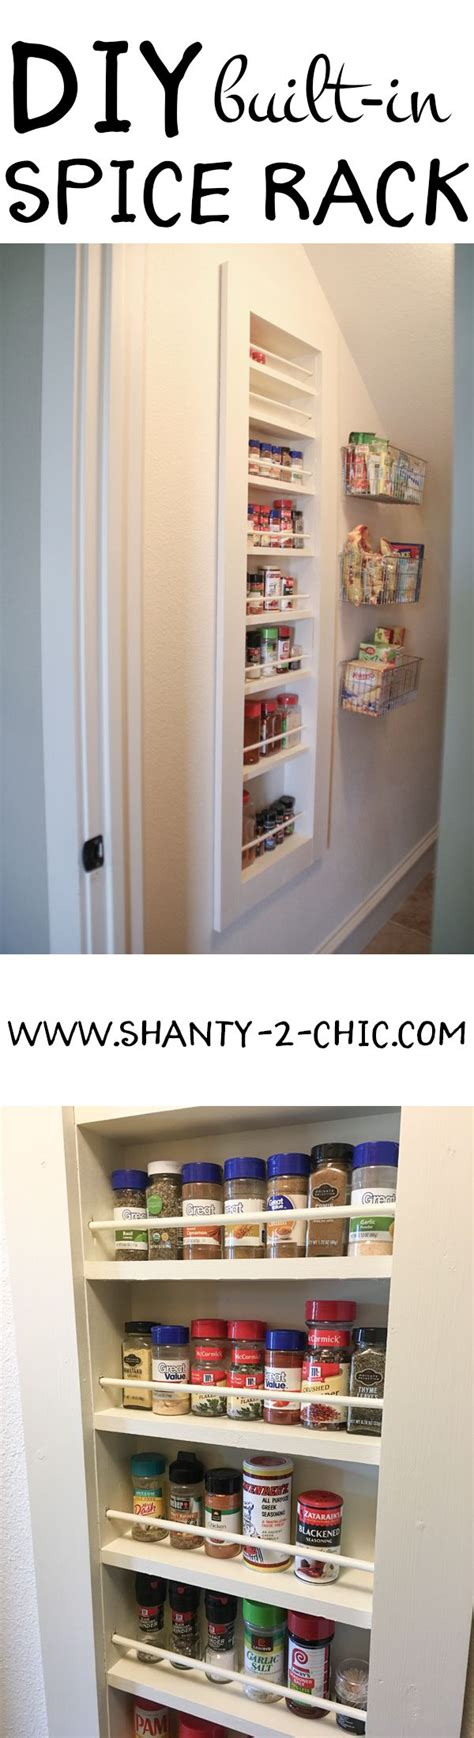 Built In Spice Rack by Diy Built In Spice Rack Free Plans And Tutorial Shanty